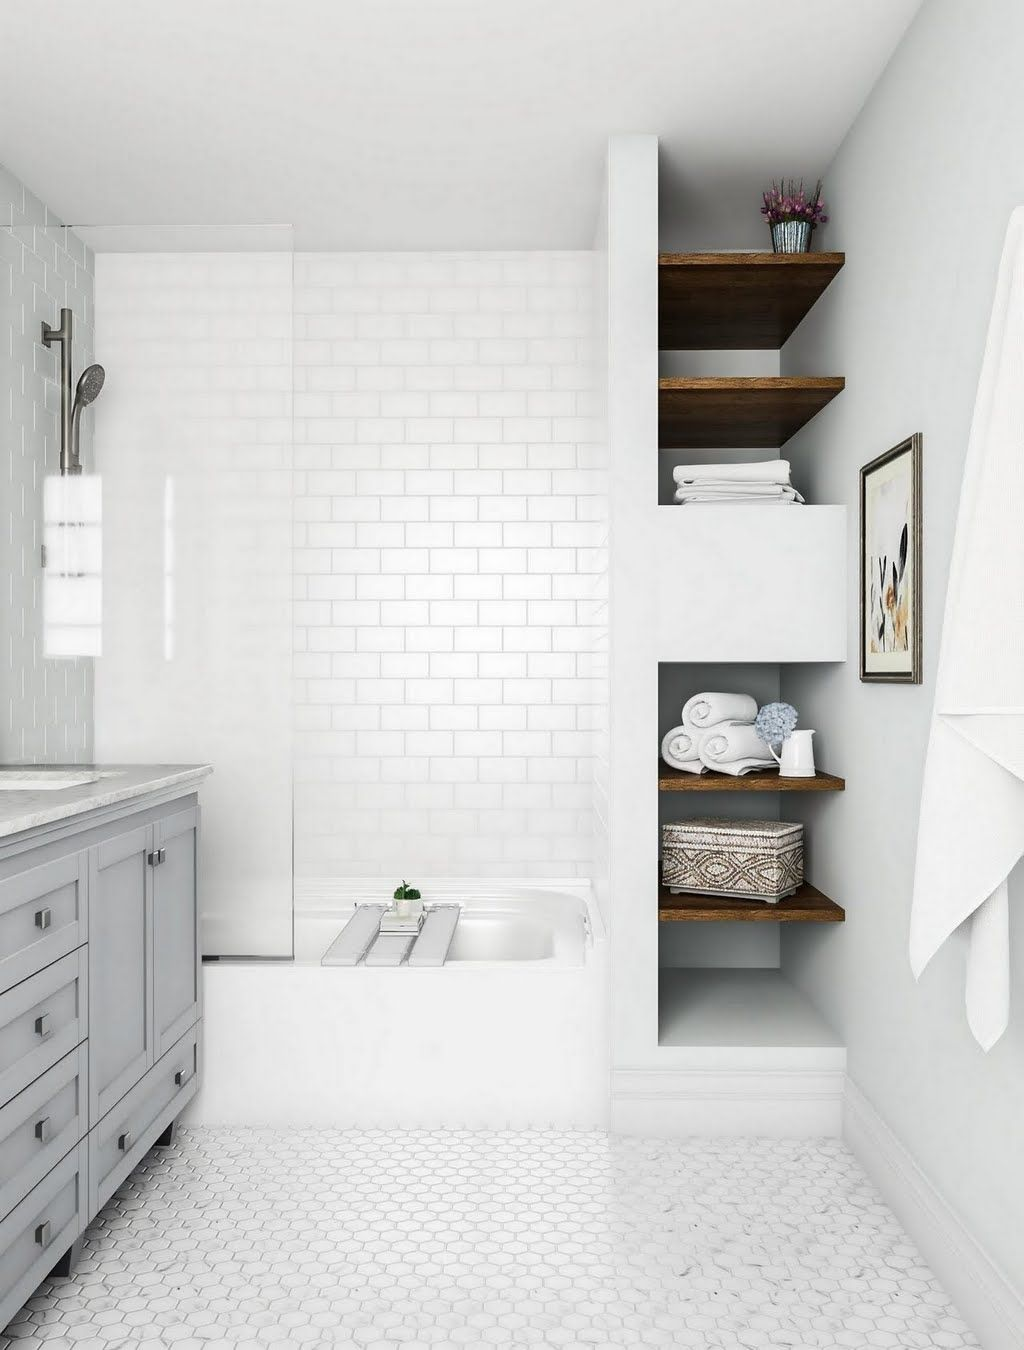 Home Depot Bathroom Flooring Ideas: Shop Our Bathroom Department To Customize Your Classic